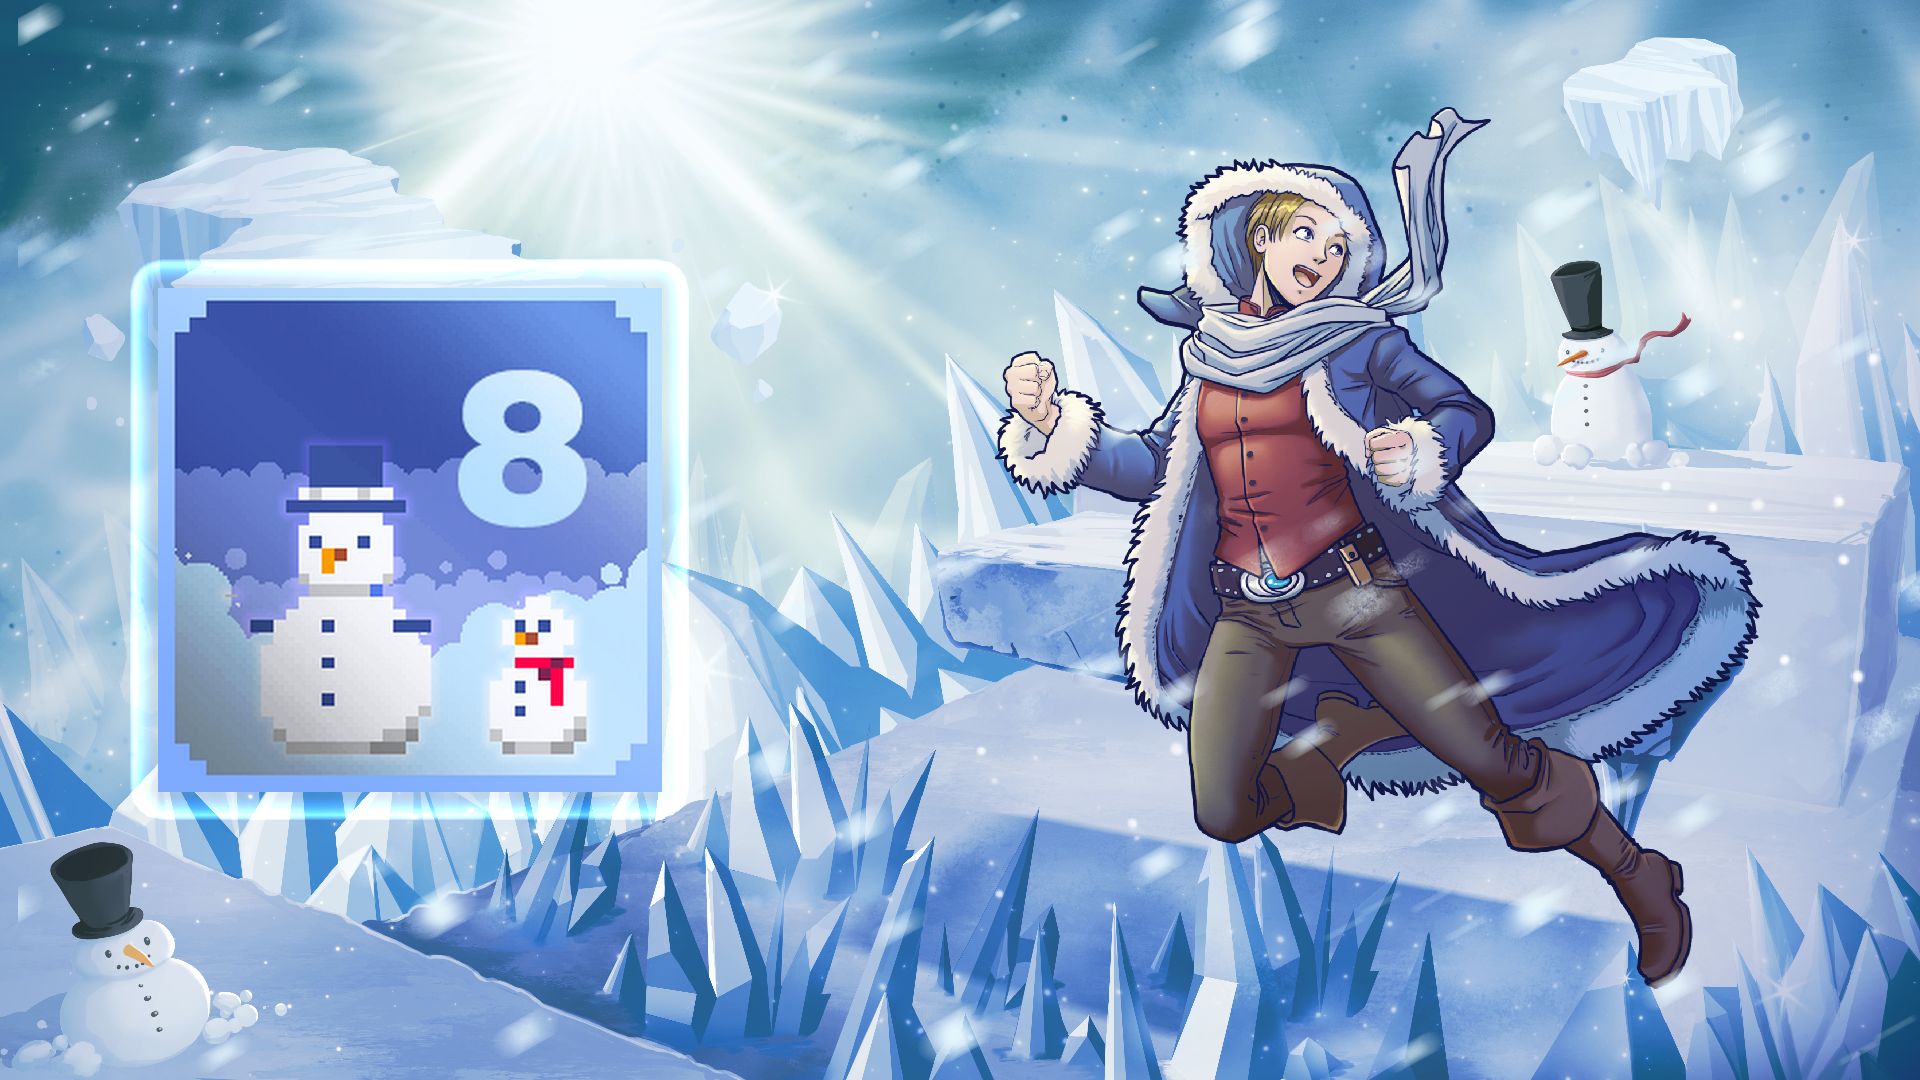 Icon for Level 8